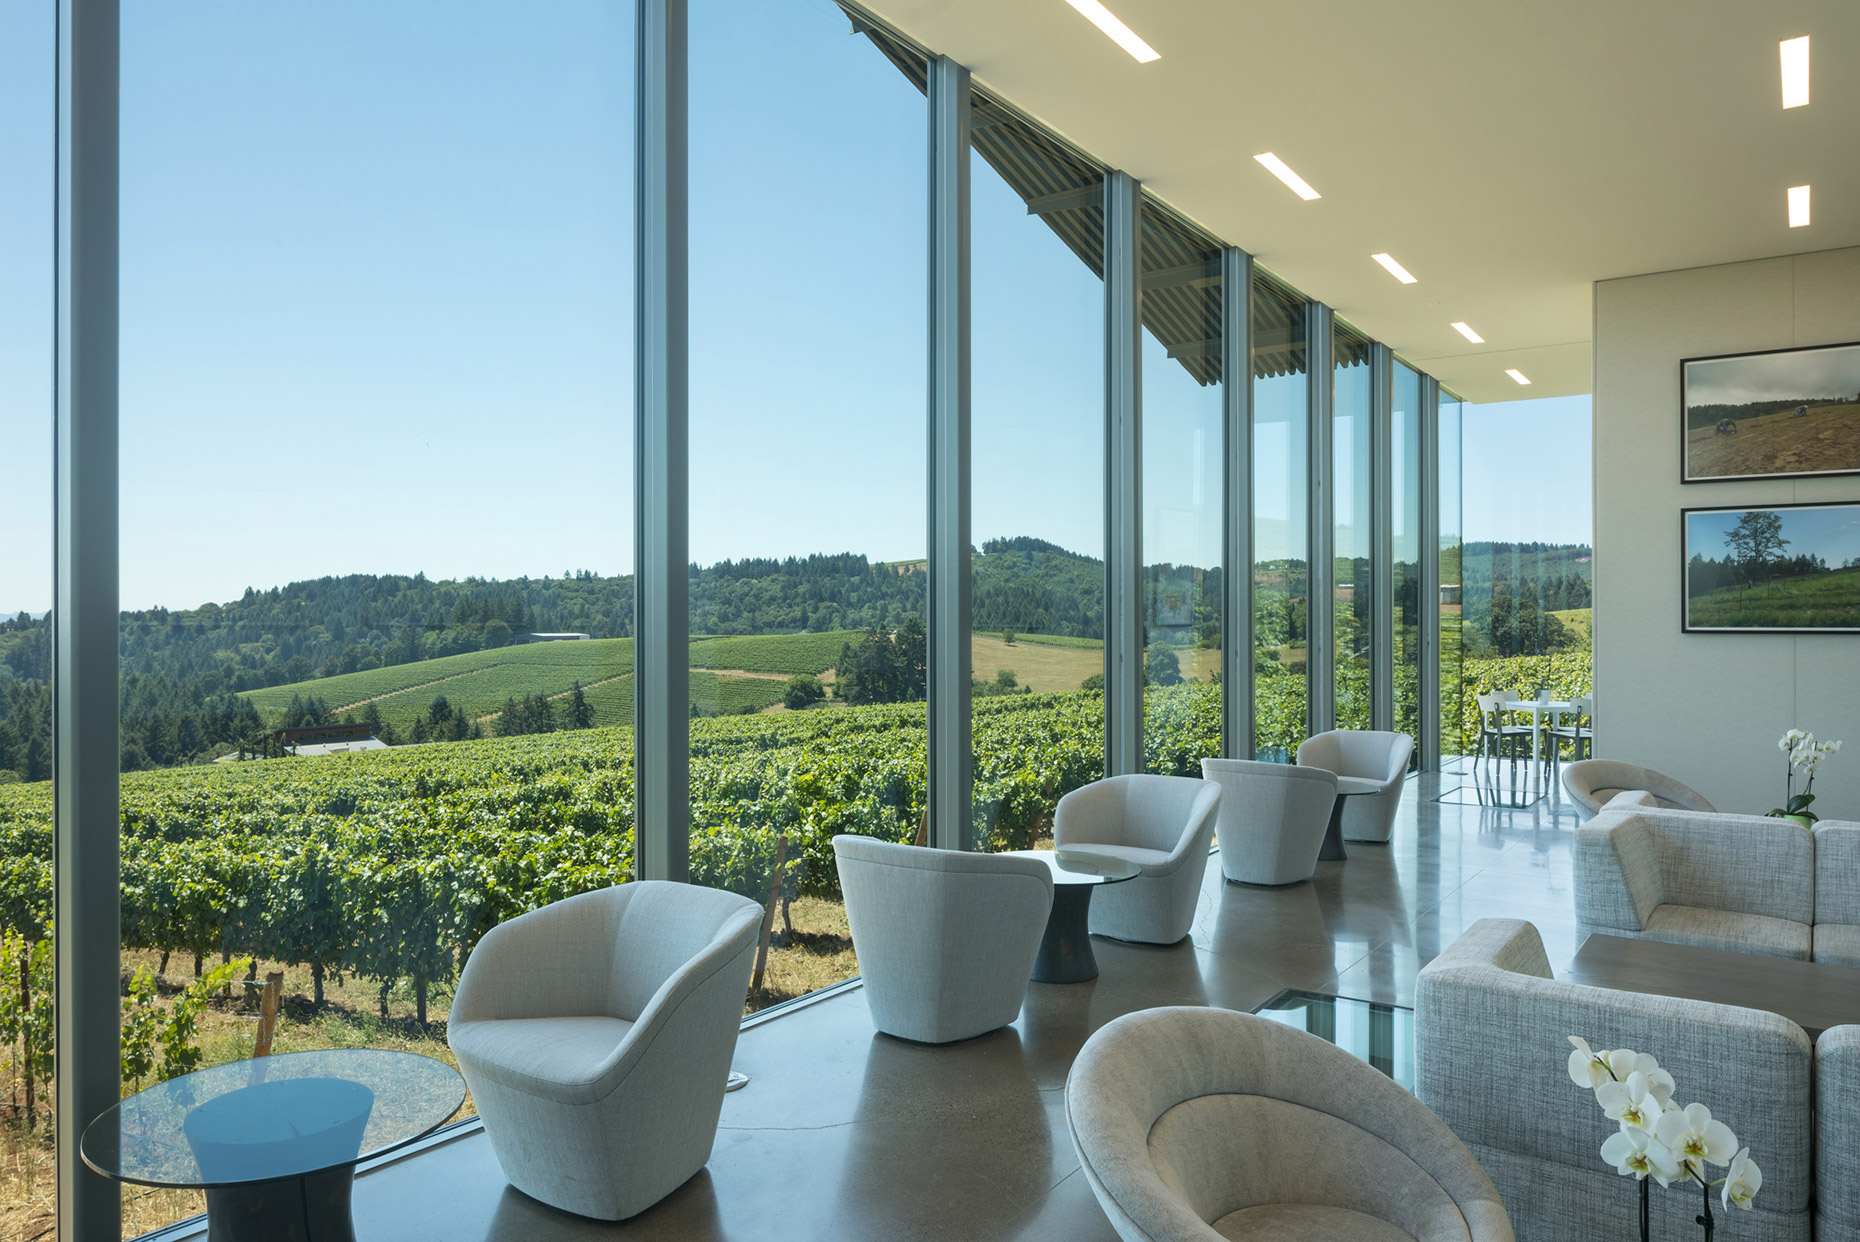 Interior Furioso Winery - Waechter Architecture